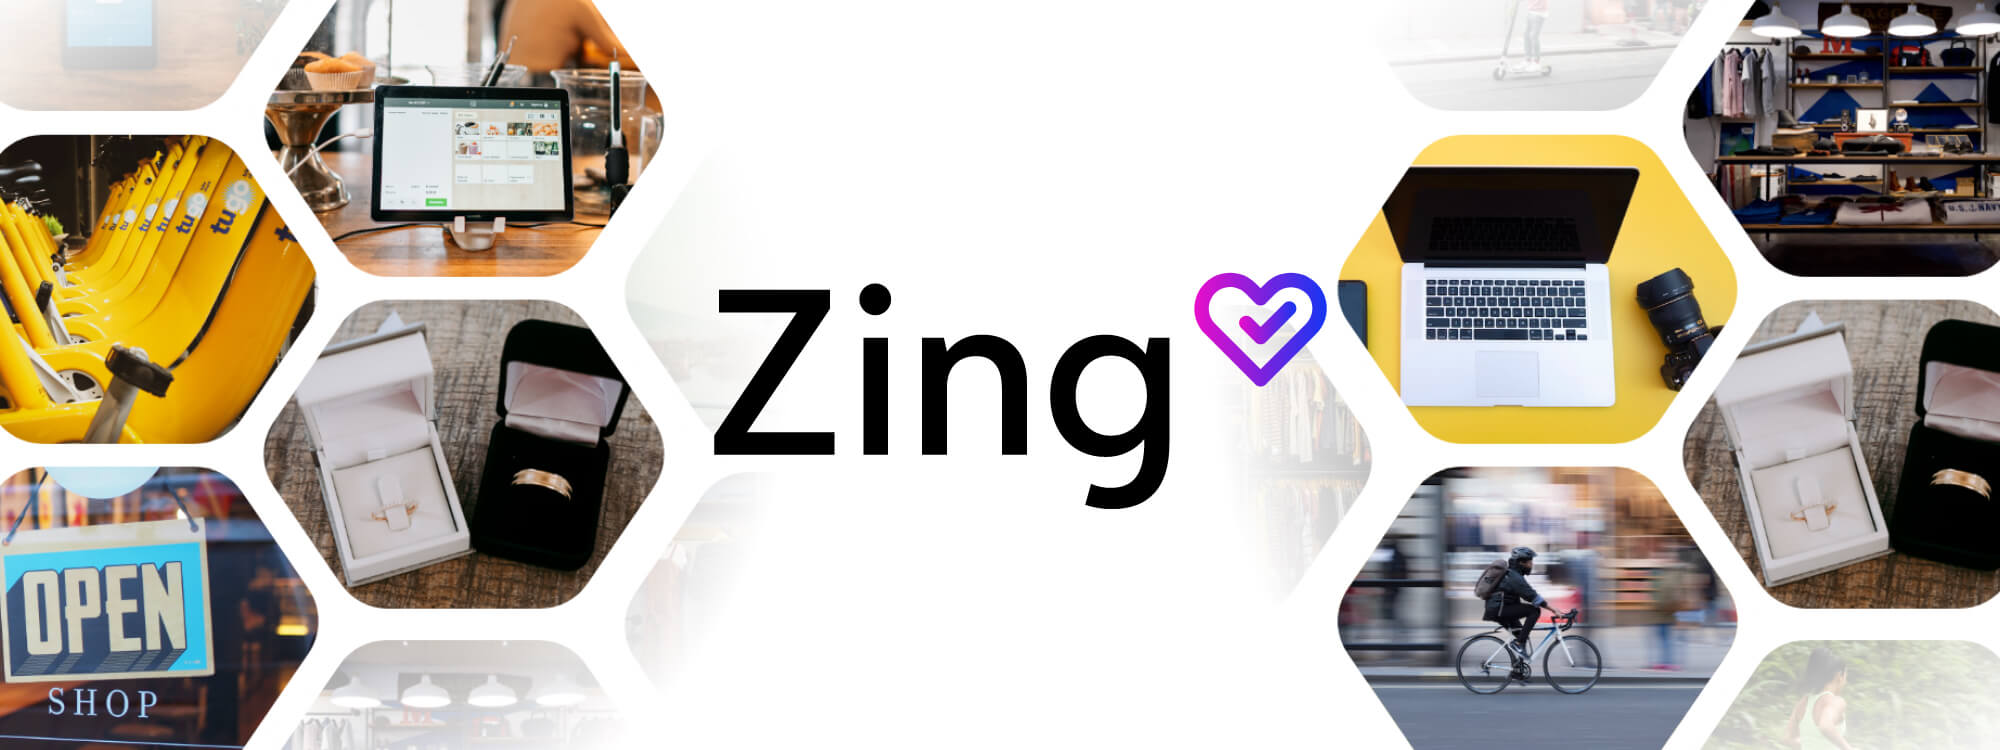 Introducing Zing Cover